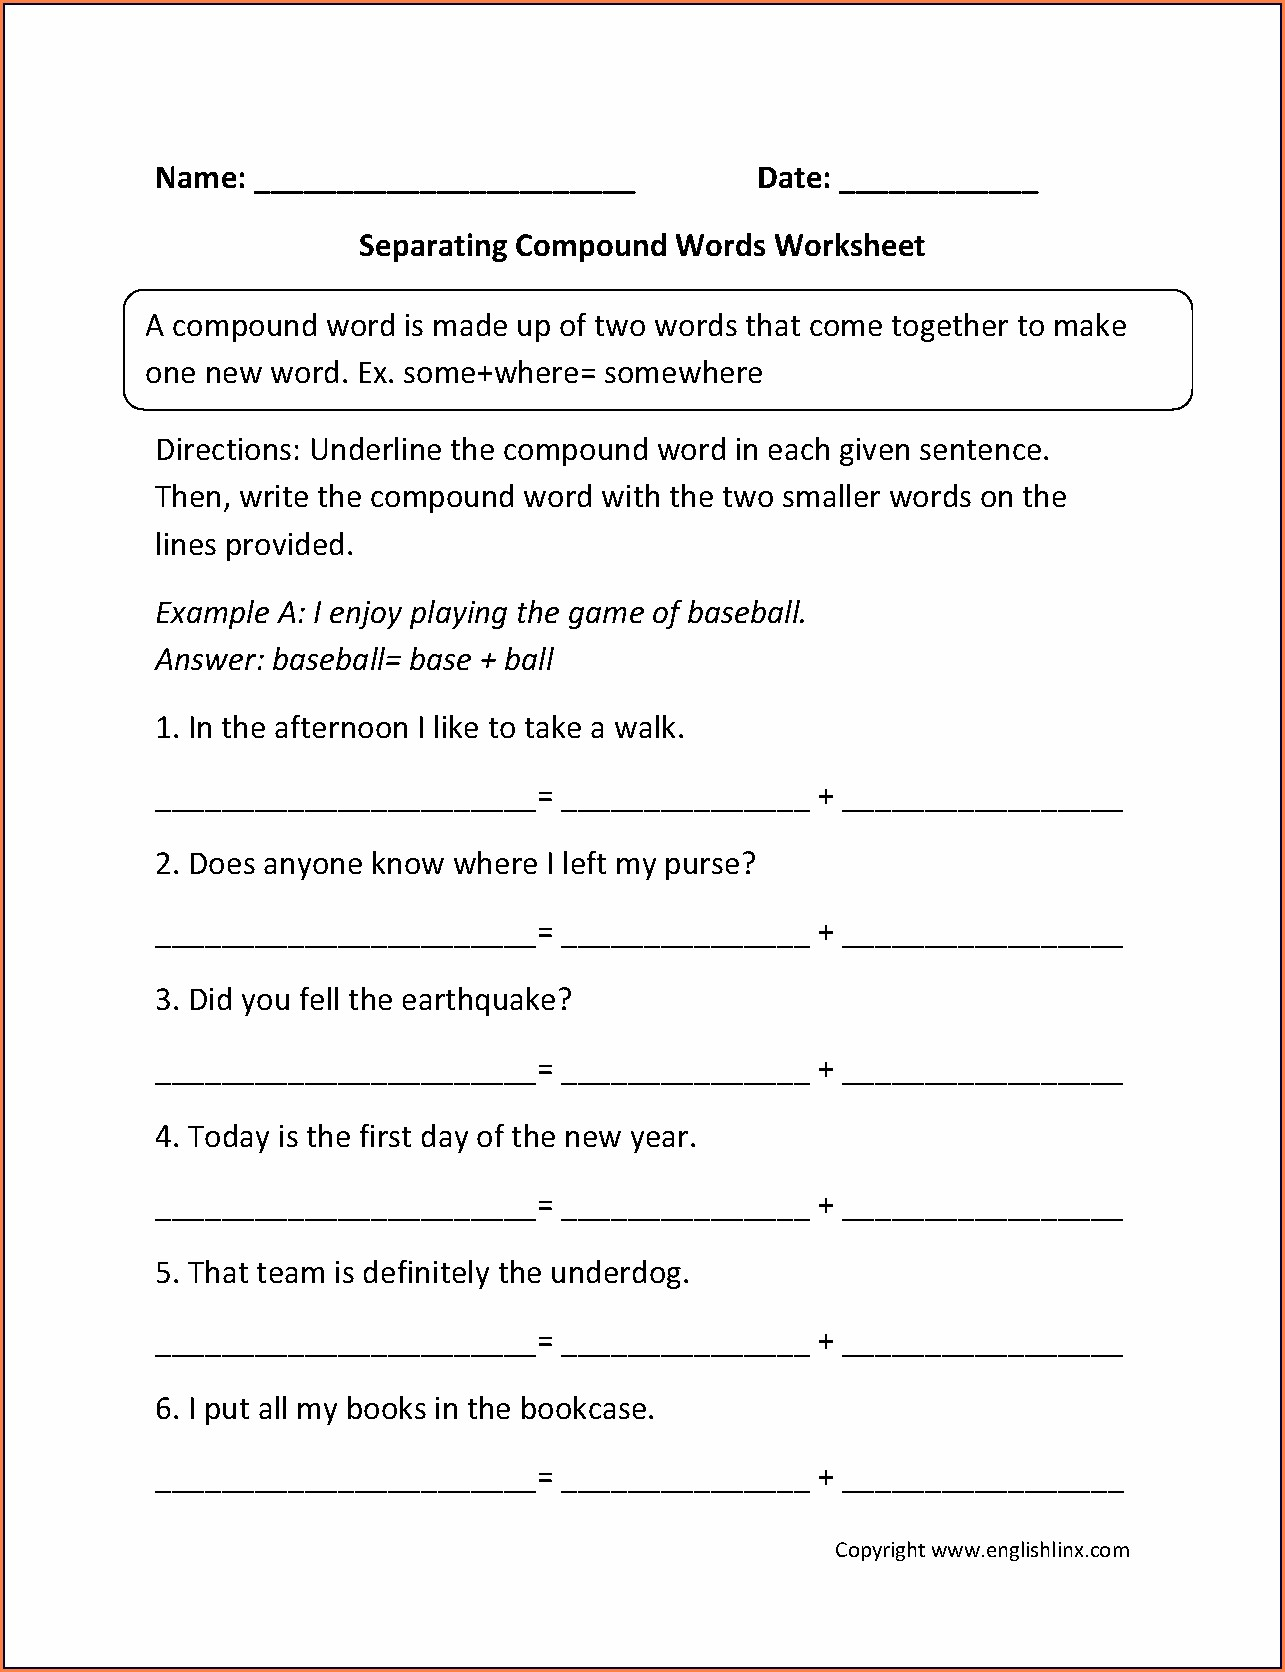 Compound Words Worksheets For 1st Grade